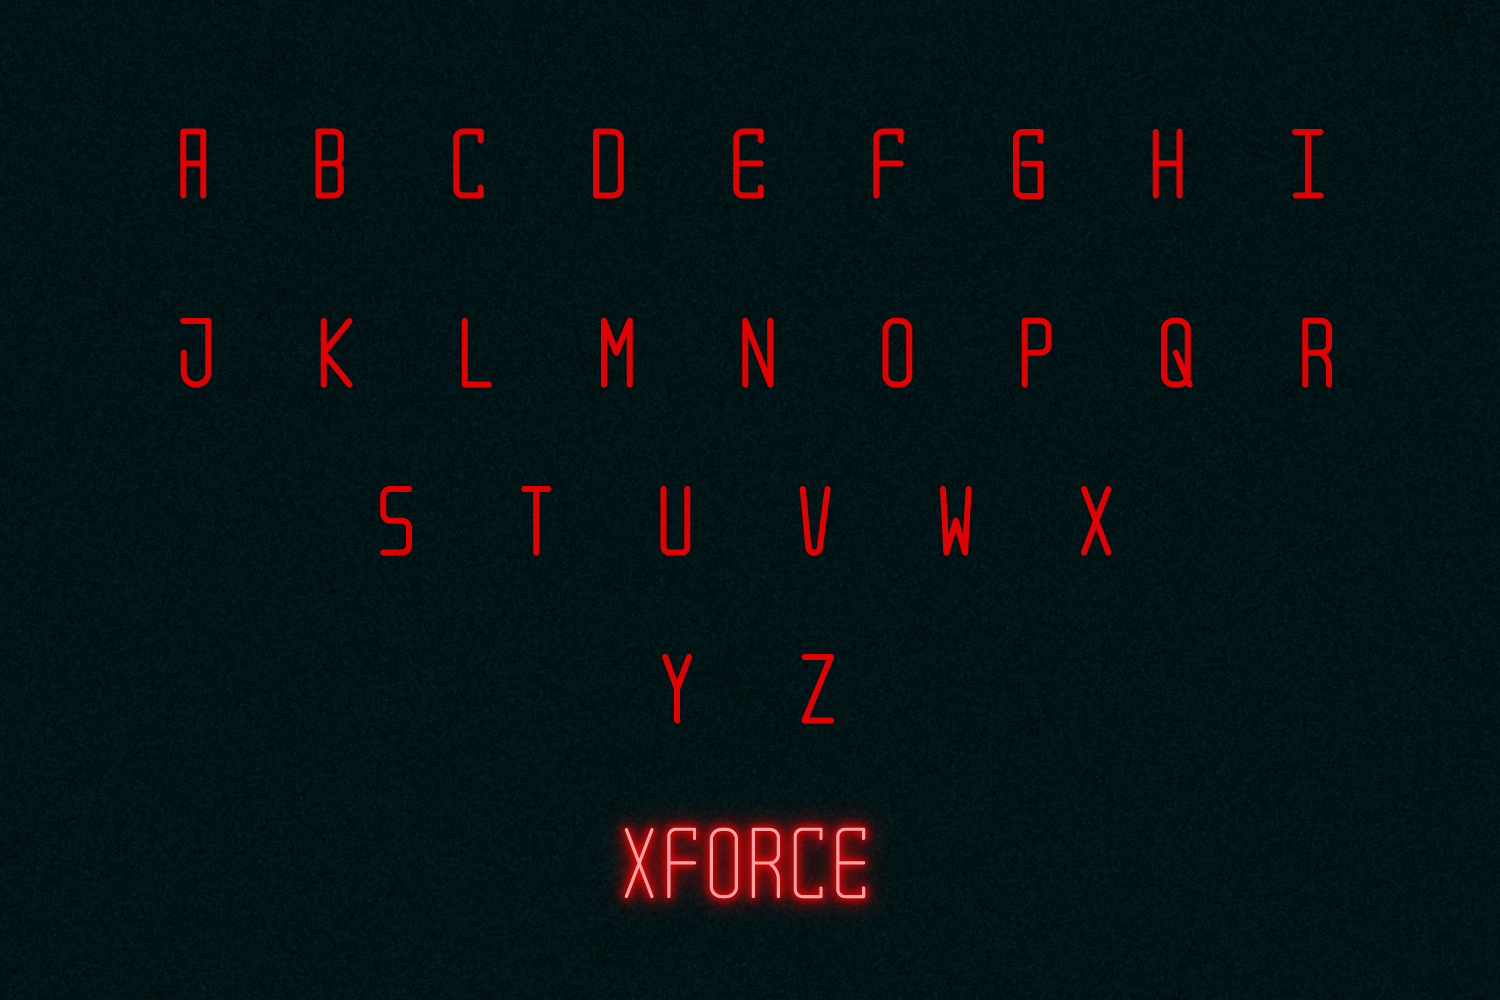 XForce - Minimal Tech Font example image 2